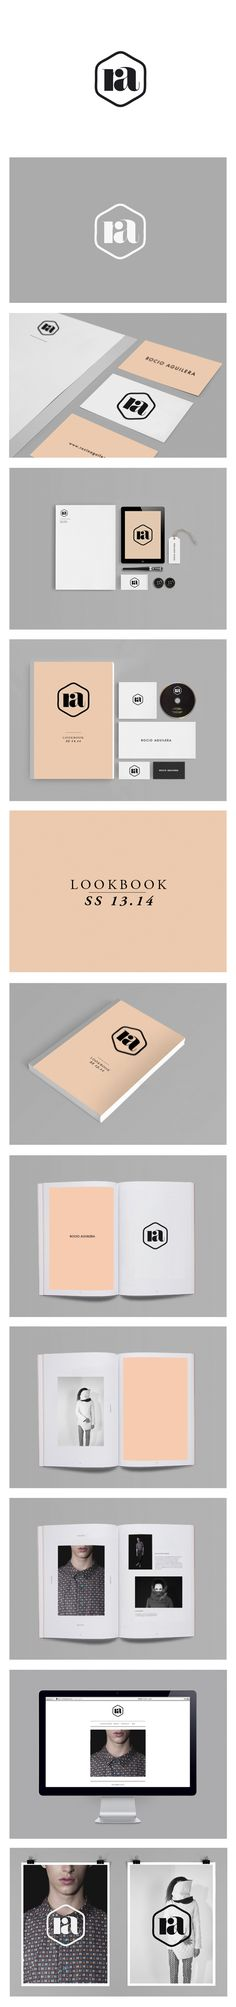 Rocío Aguilera by David Sanden, via Behance #corporate #design #graphic #brand #branding #ci #cd